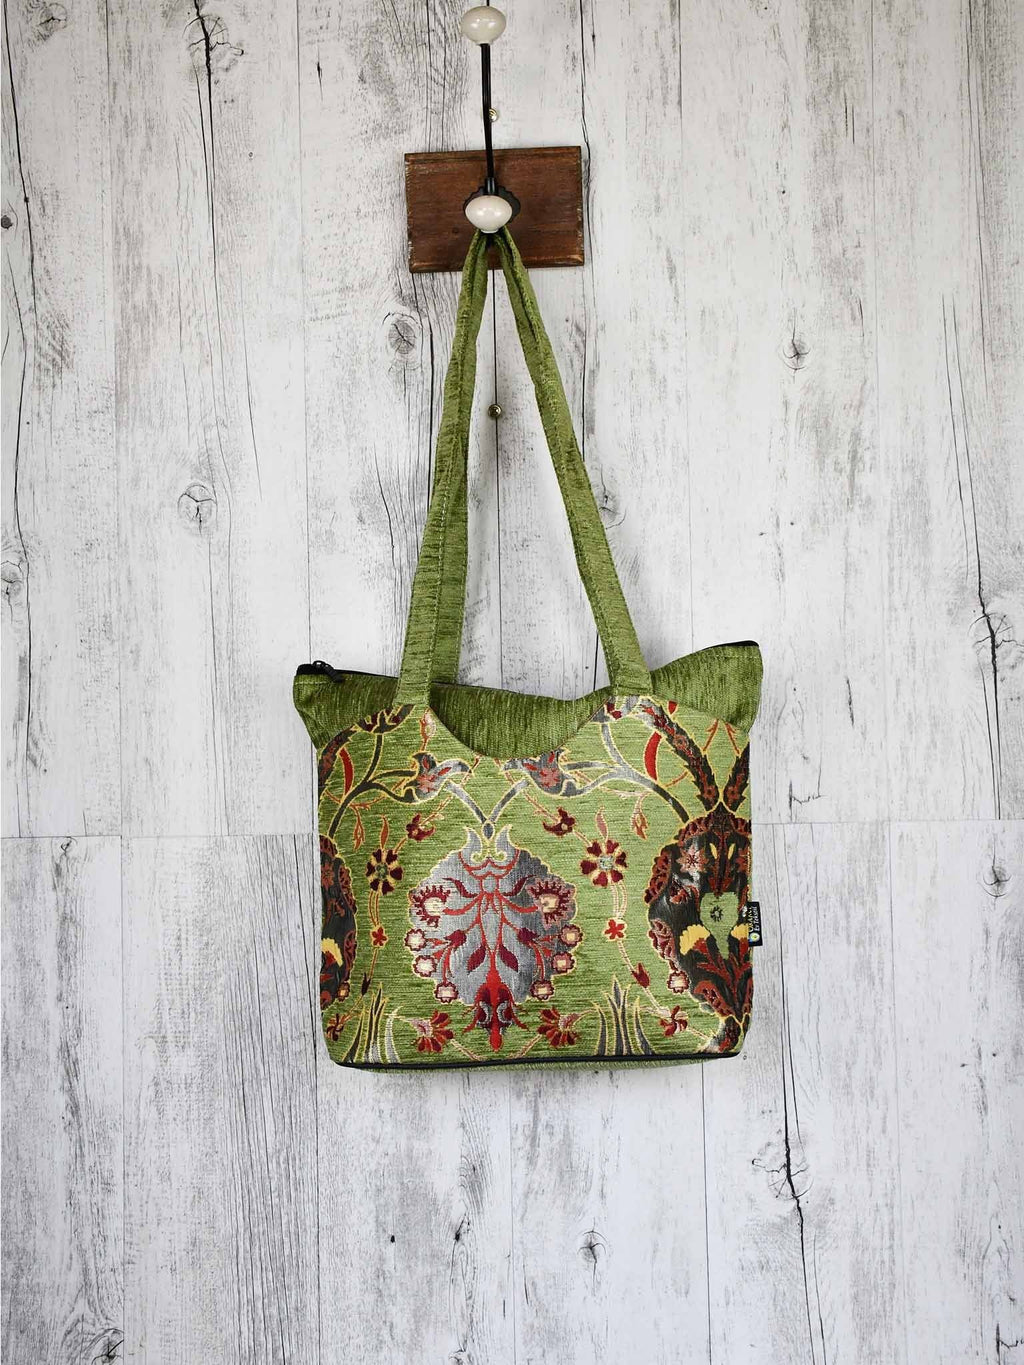 Turkish Handbag Tote Flower Light Green Textile Sydney Grand Bazaar